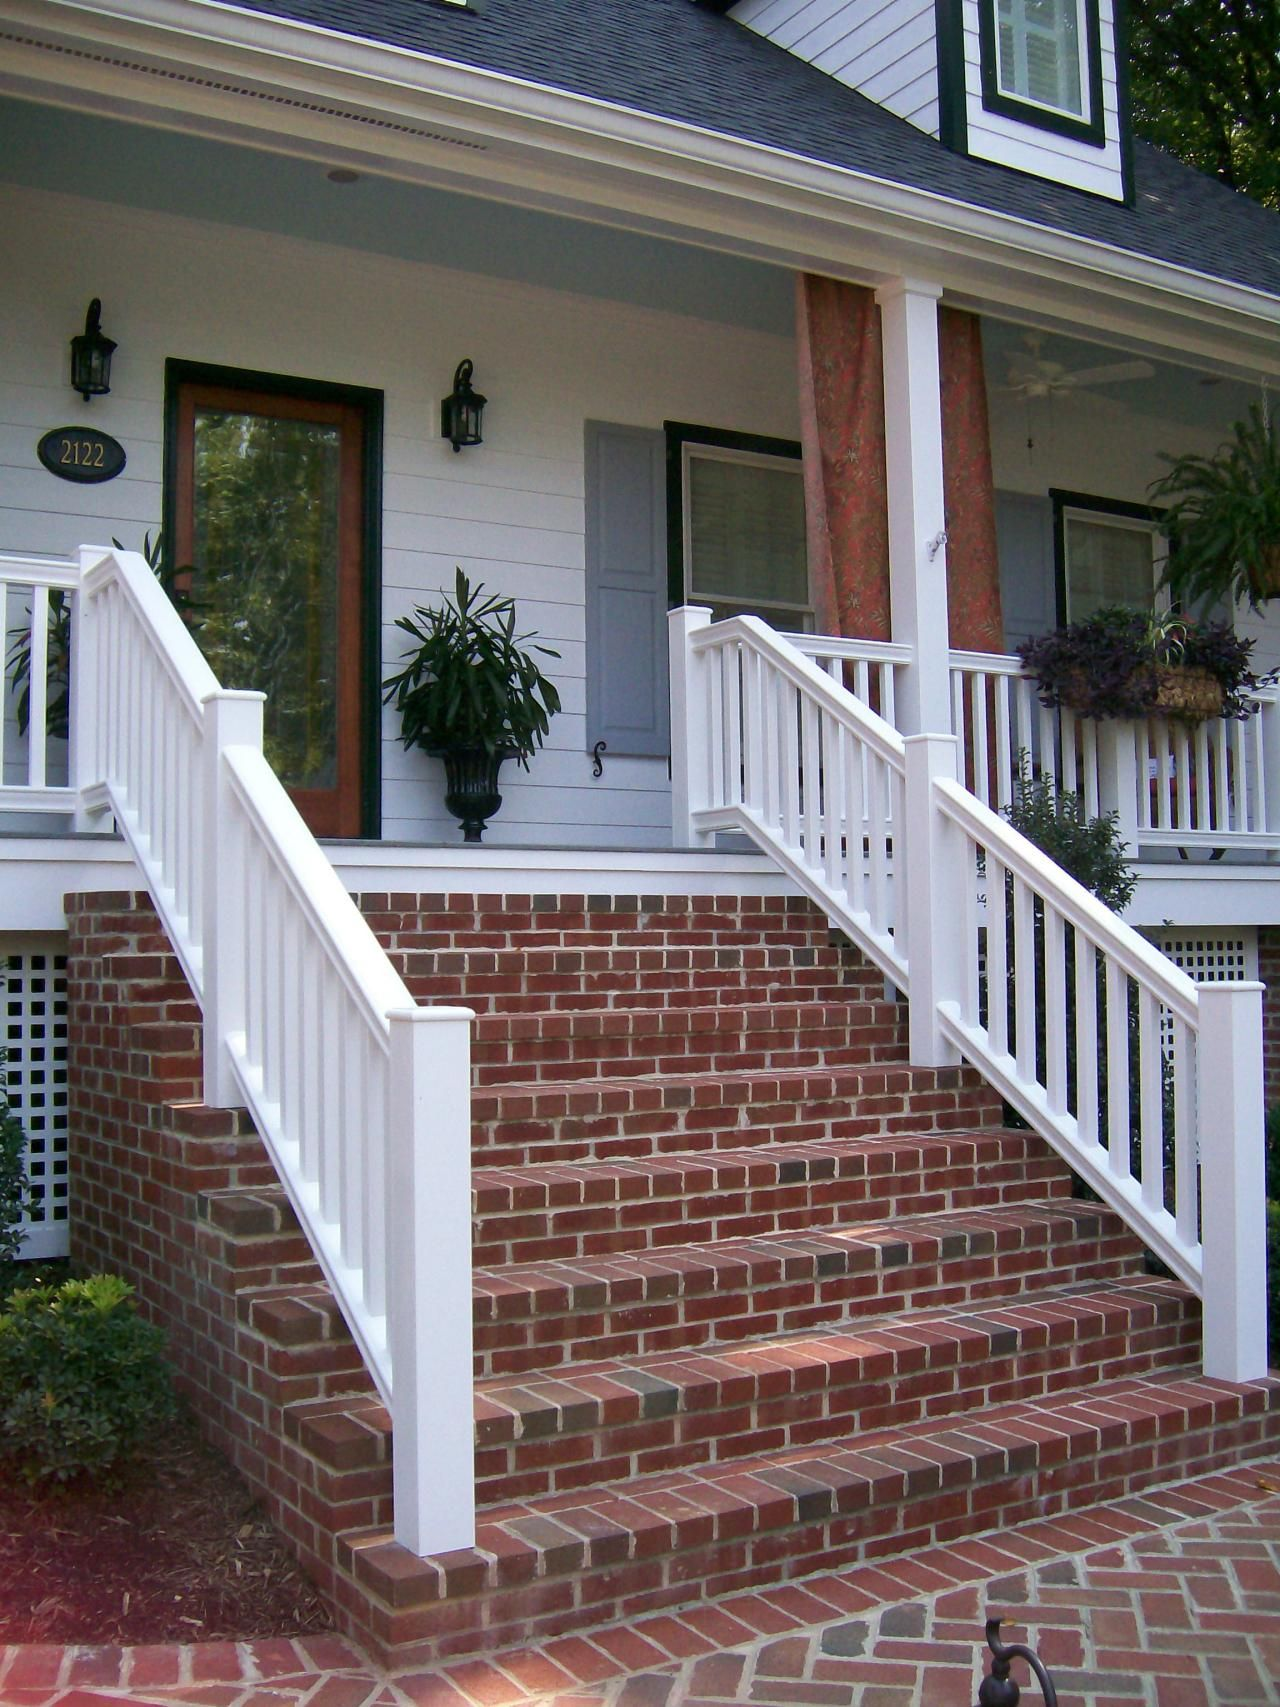 Best Red Brick Steps Provide Contrast To The Bright White Home Exterior The Porch Features A Wood 400 x 300